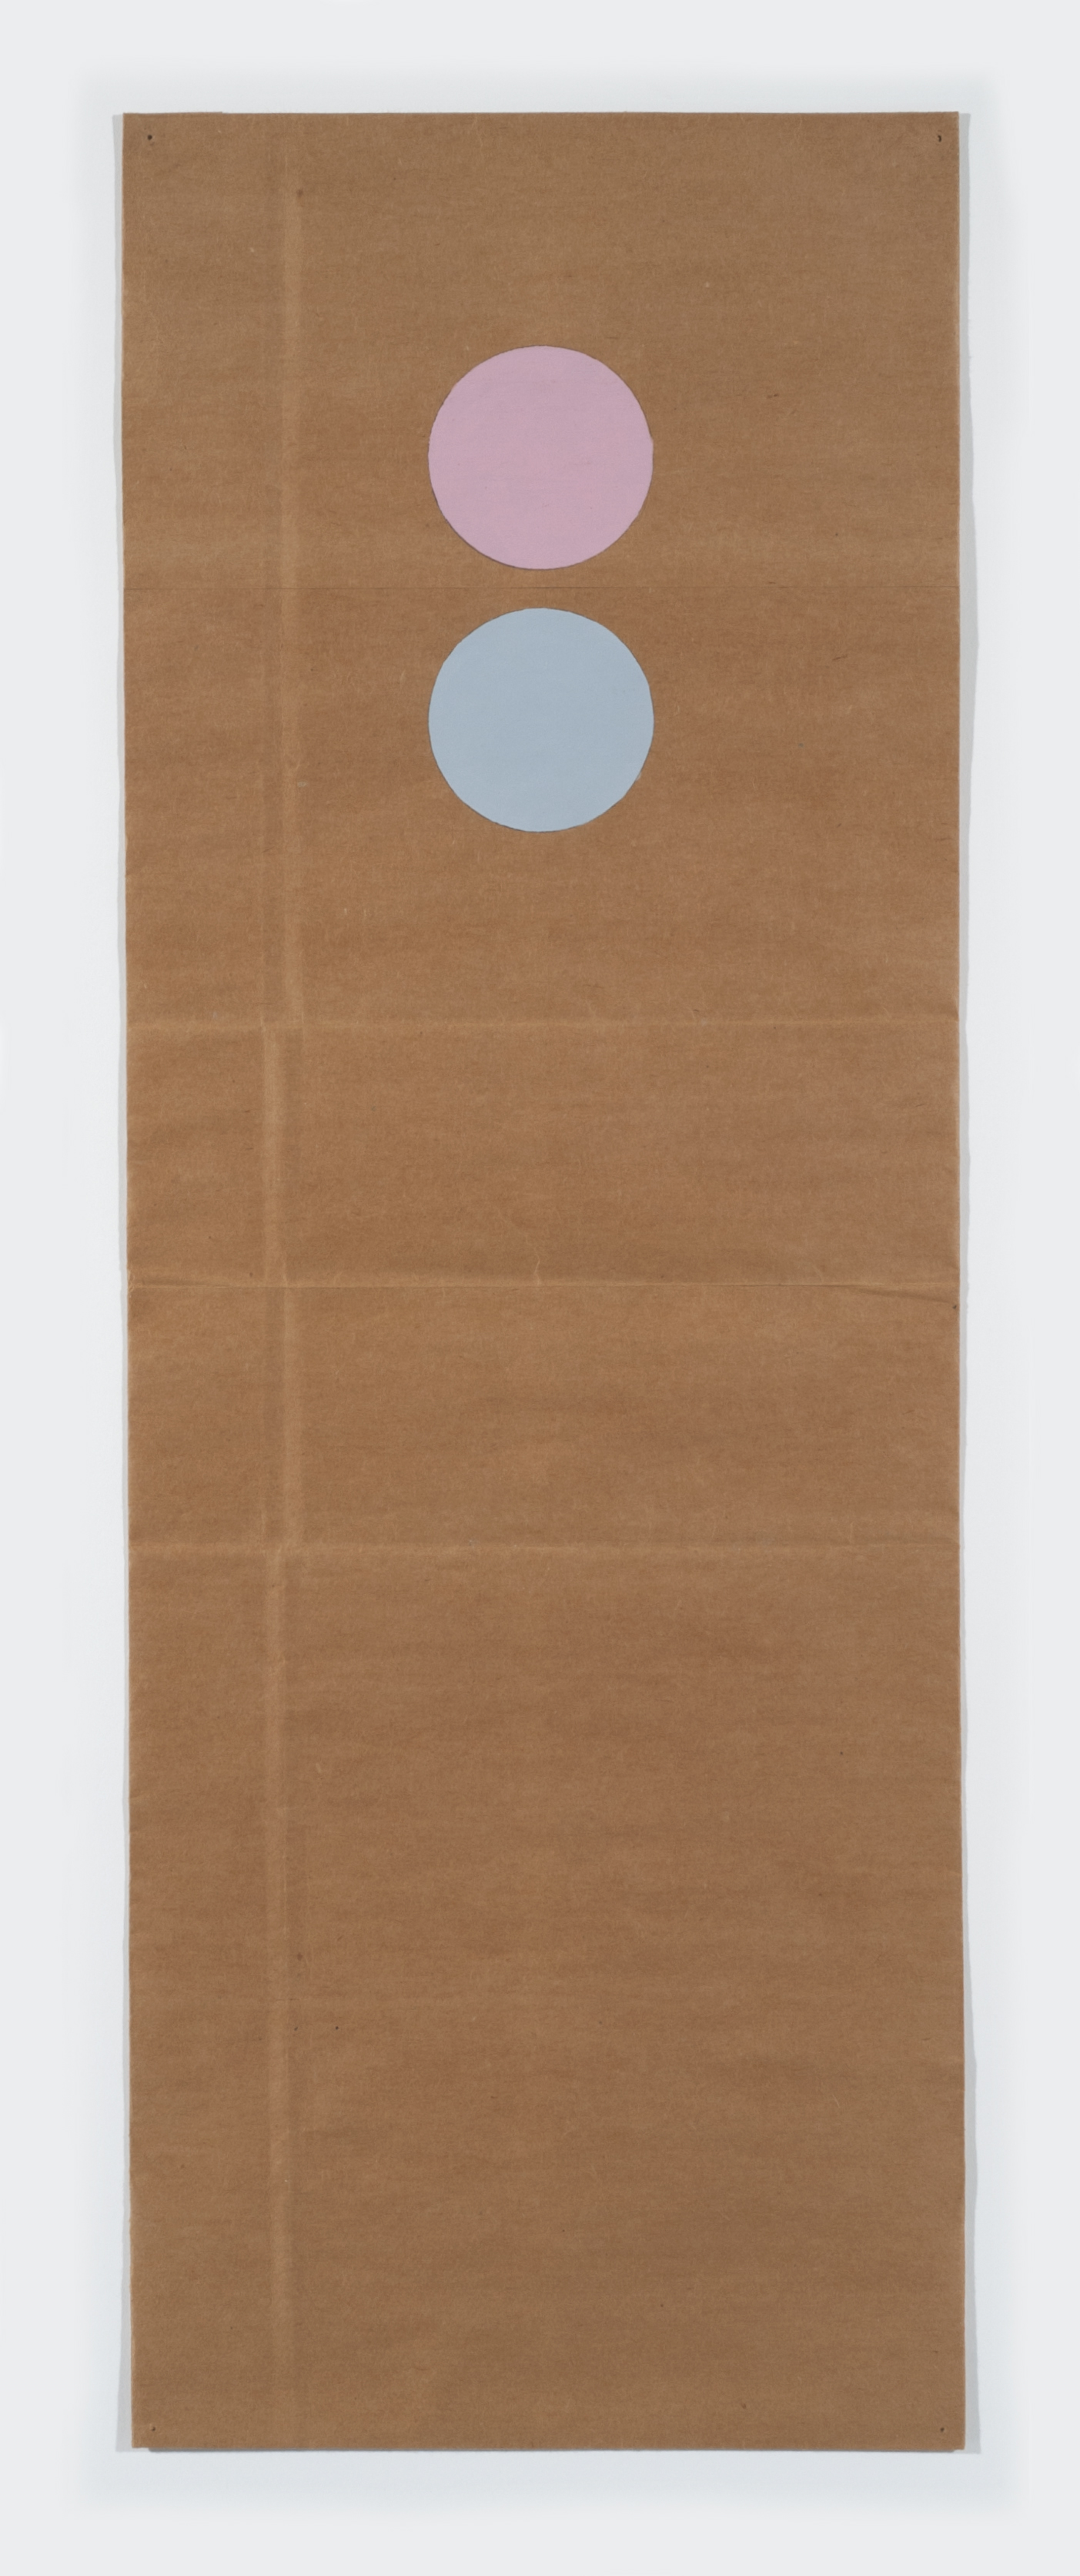 "Tom Downing  Noon , 1984 Acrylic on paper 30"" x 11"" framed Courtesy of Gallery 2112"